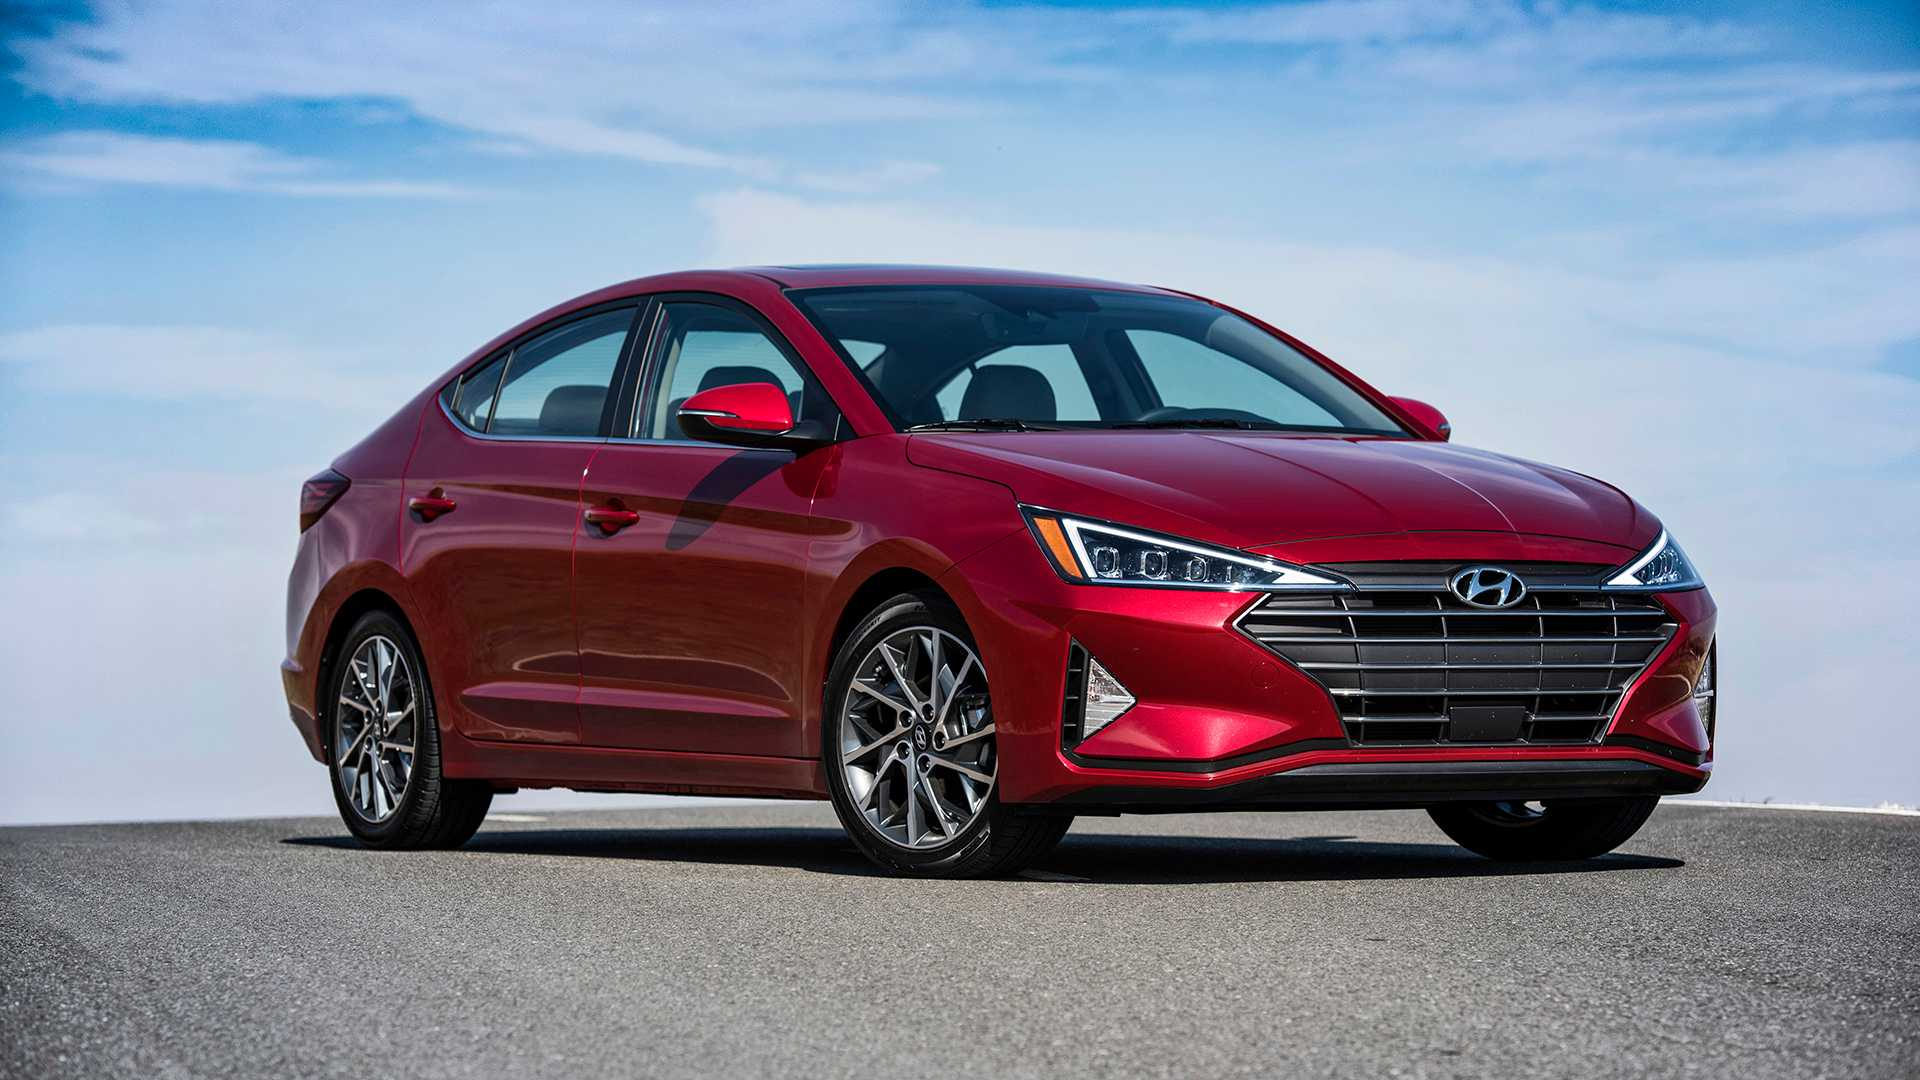 93 All New 2019 Hyundai Elantra Specs